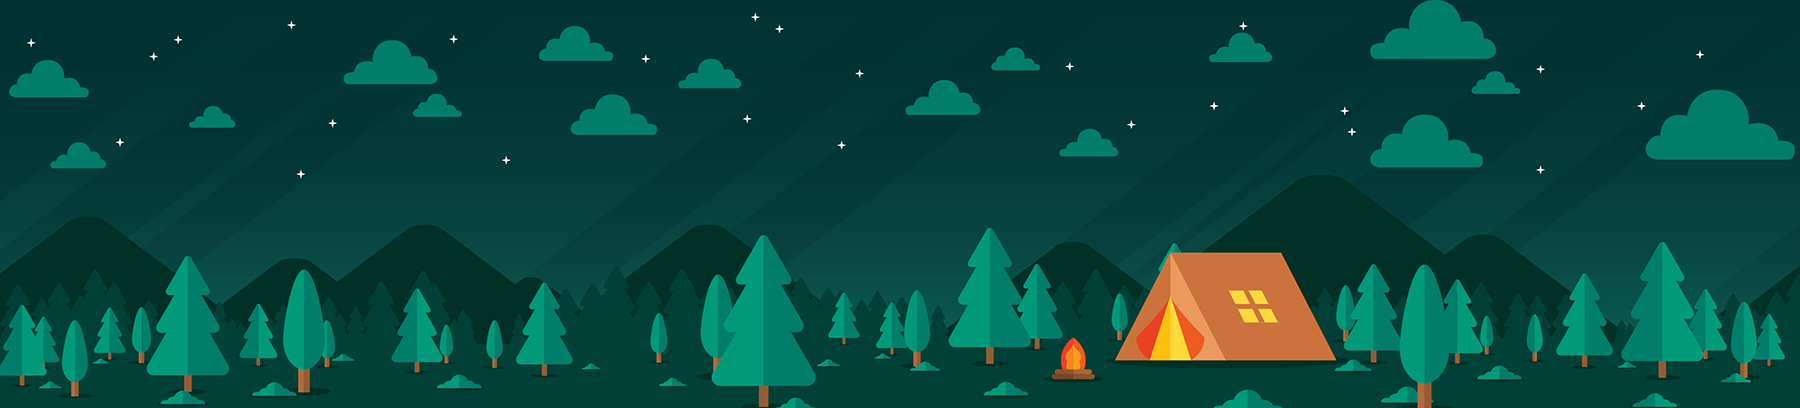 Camping graphic header.